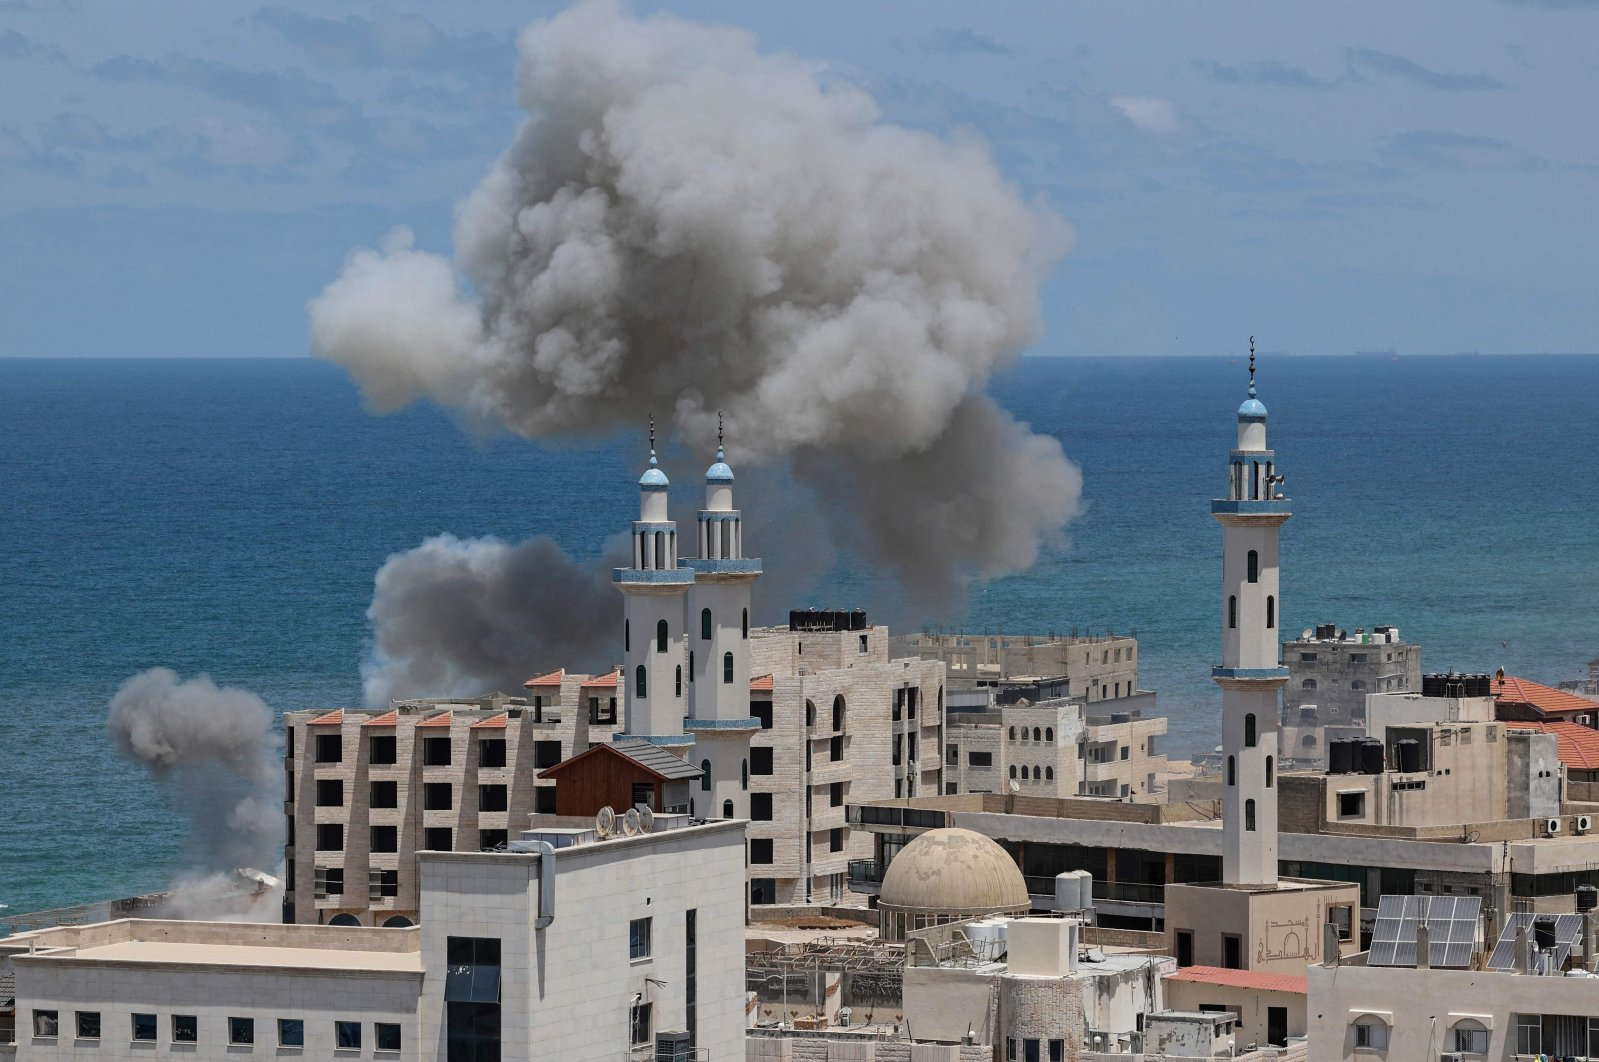 Smoke billows from the port of Gaza City following an Israeli bombardment from the sea, the Gaza Strip, Palestine, May 17, 2021. (AFP Photo)